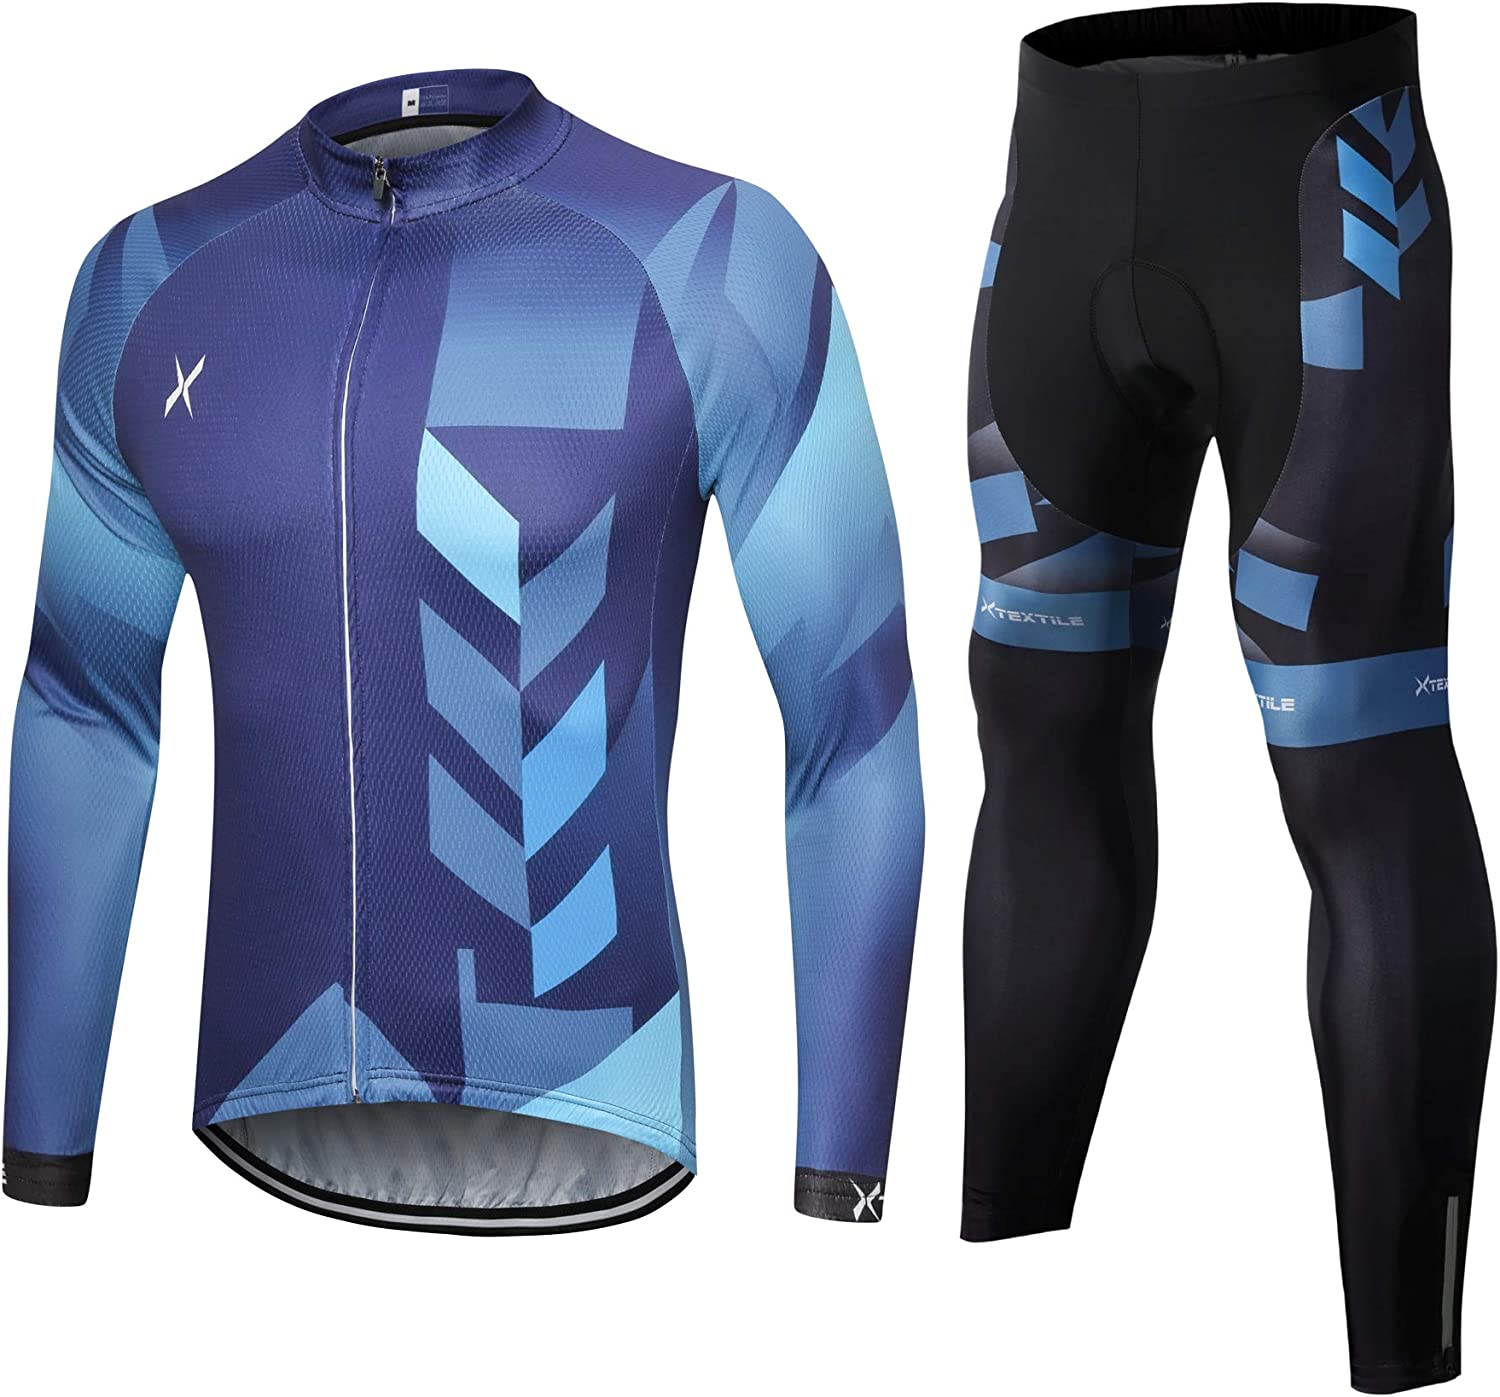 Xtextile Men's Cycling Jersey Set with Full Zipper Long Sleeves Bicycle Shirt and 4D Coolmax Padded Cycling Tights Leggings: Clothing